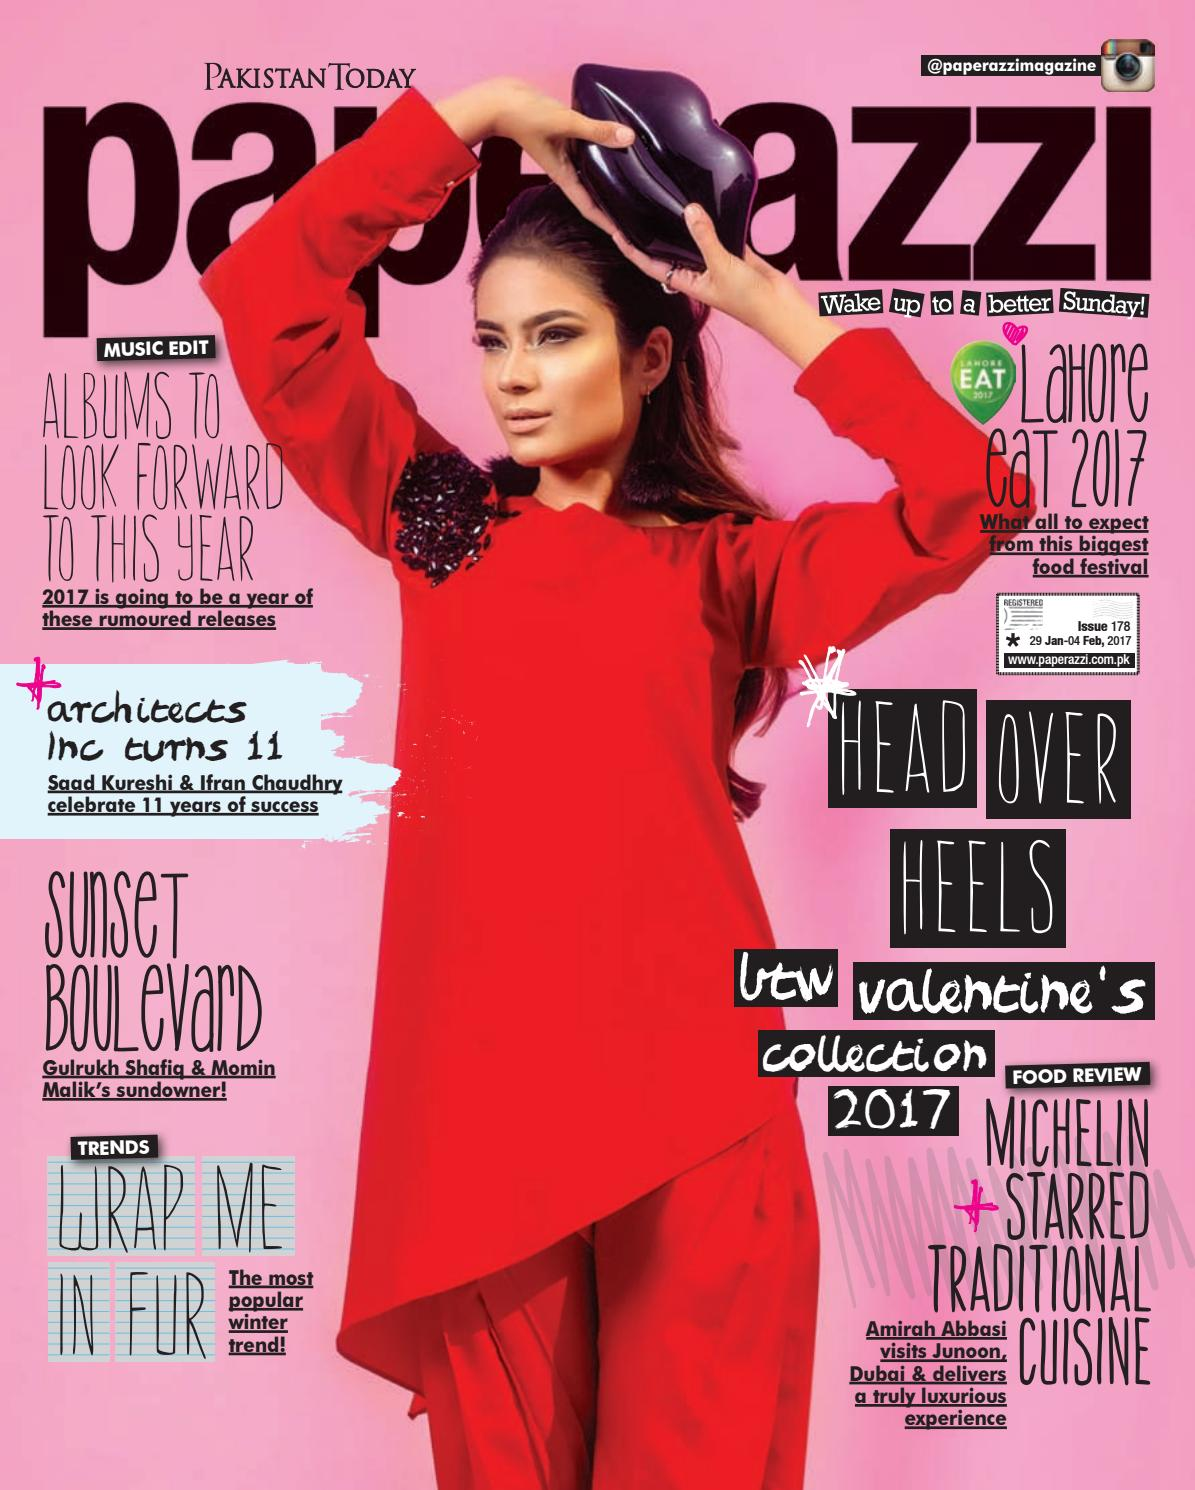 Pakistan Today Paperazzi Issue 179 B Feb 5th, 2017 by